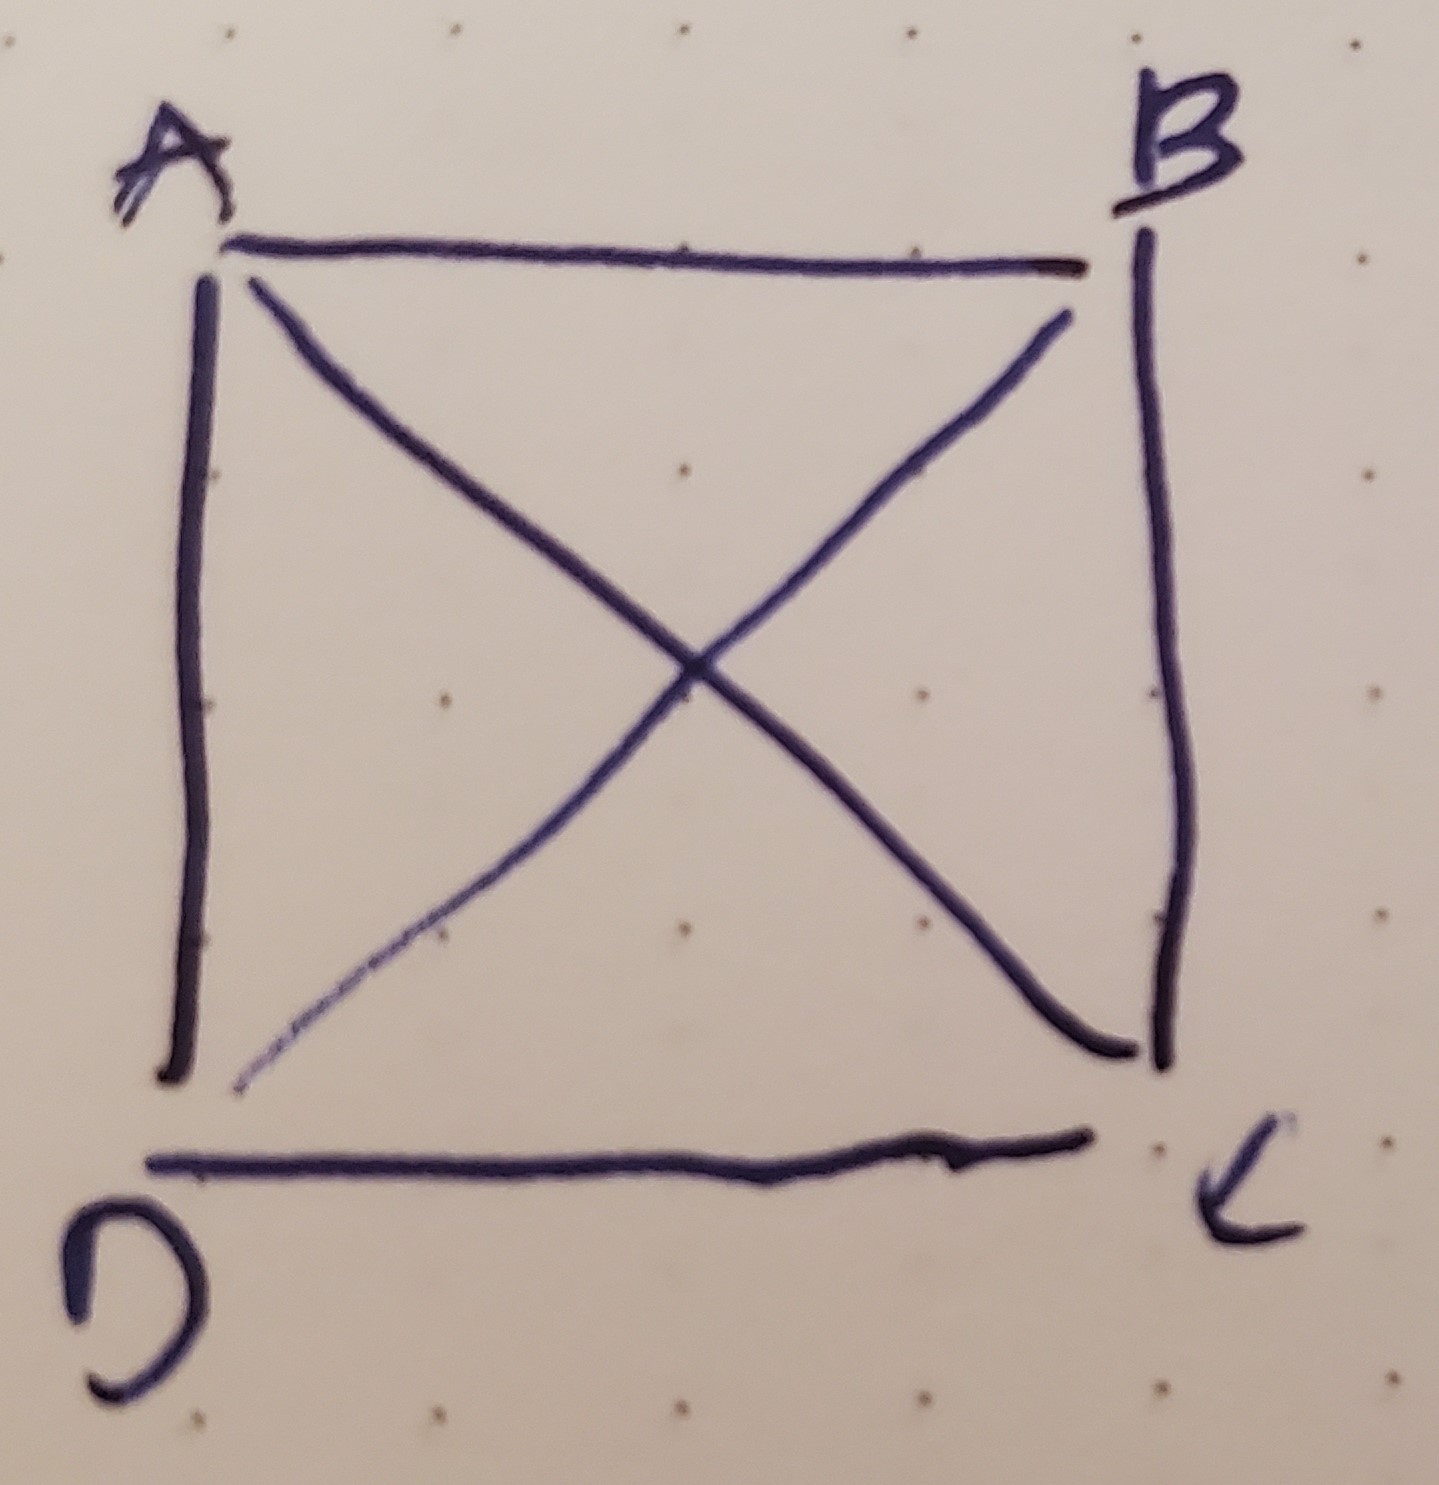 A Square with points A, B, C, and D